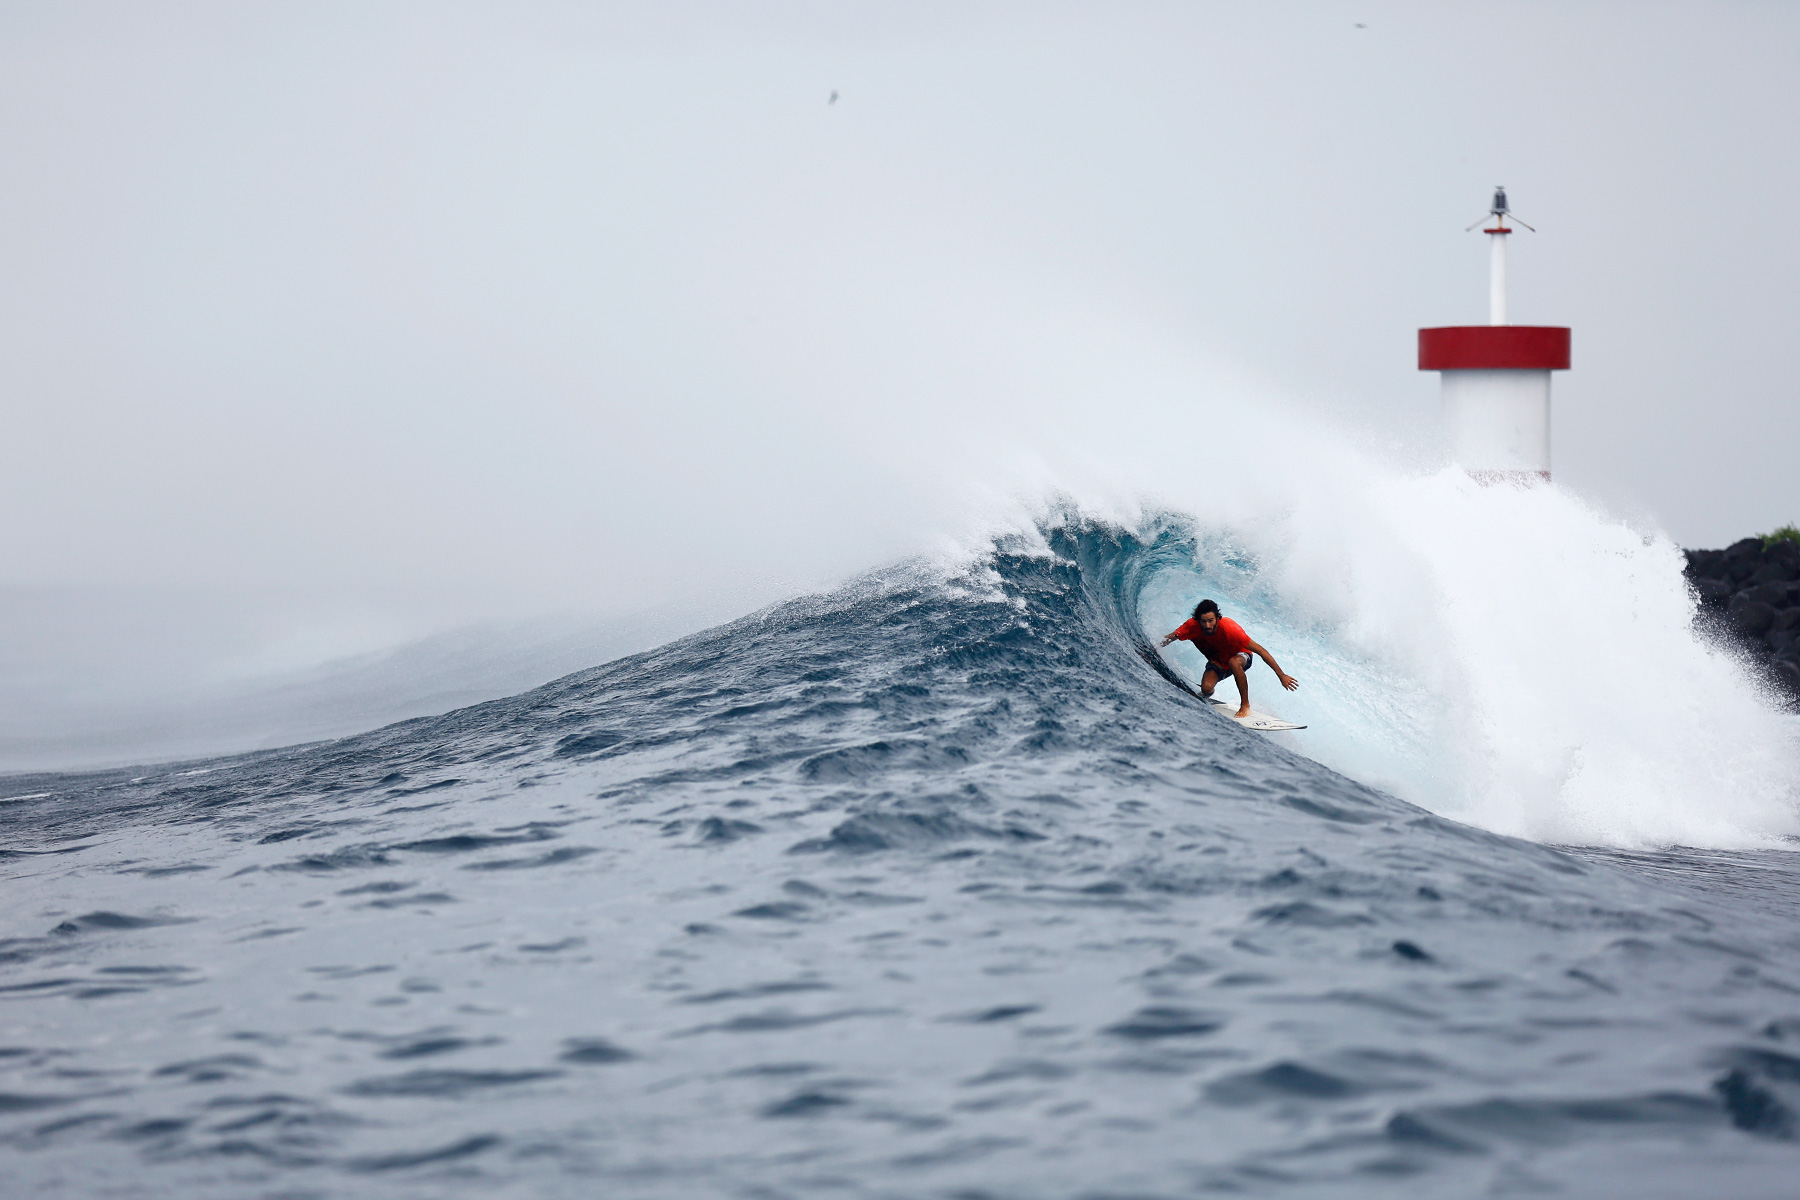 surfer toto idrovo surfing in the galapagos islands photographed by adrien vazques